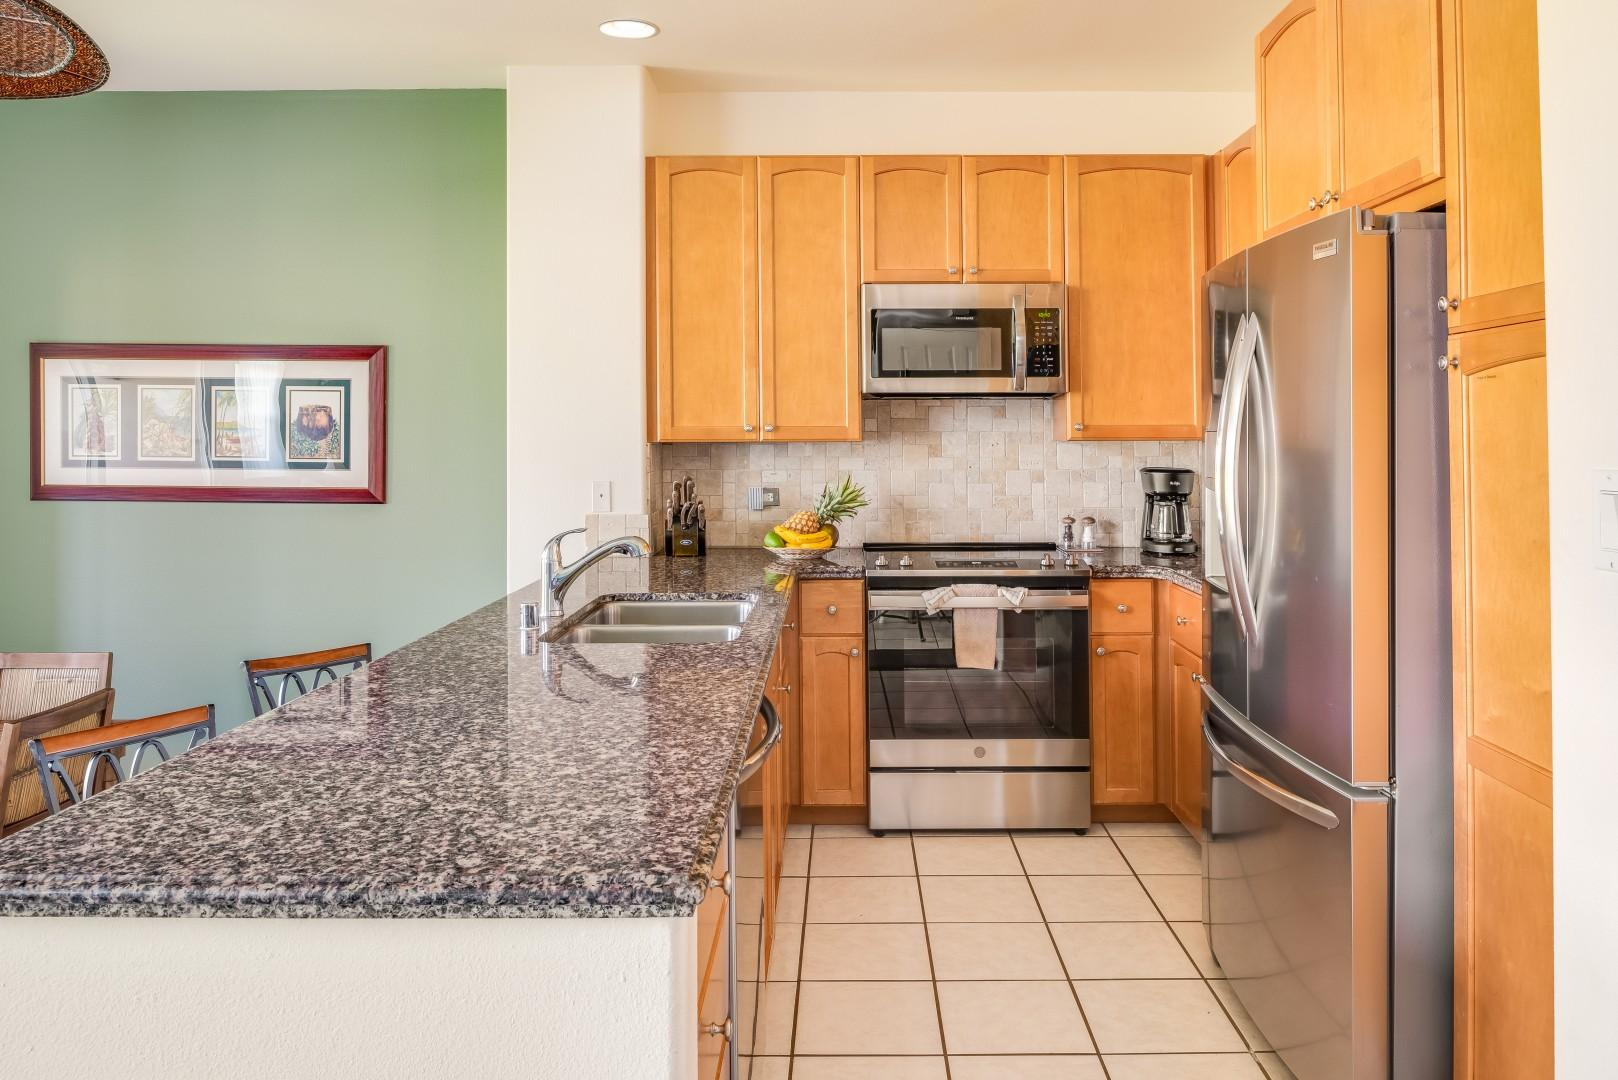 Plenty of Counter Space in the Well-Equipped Kitchen